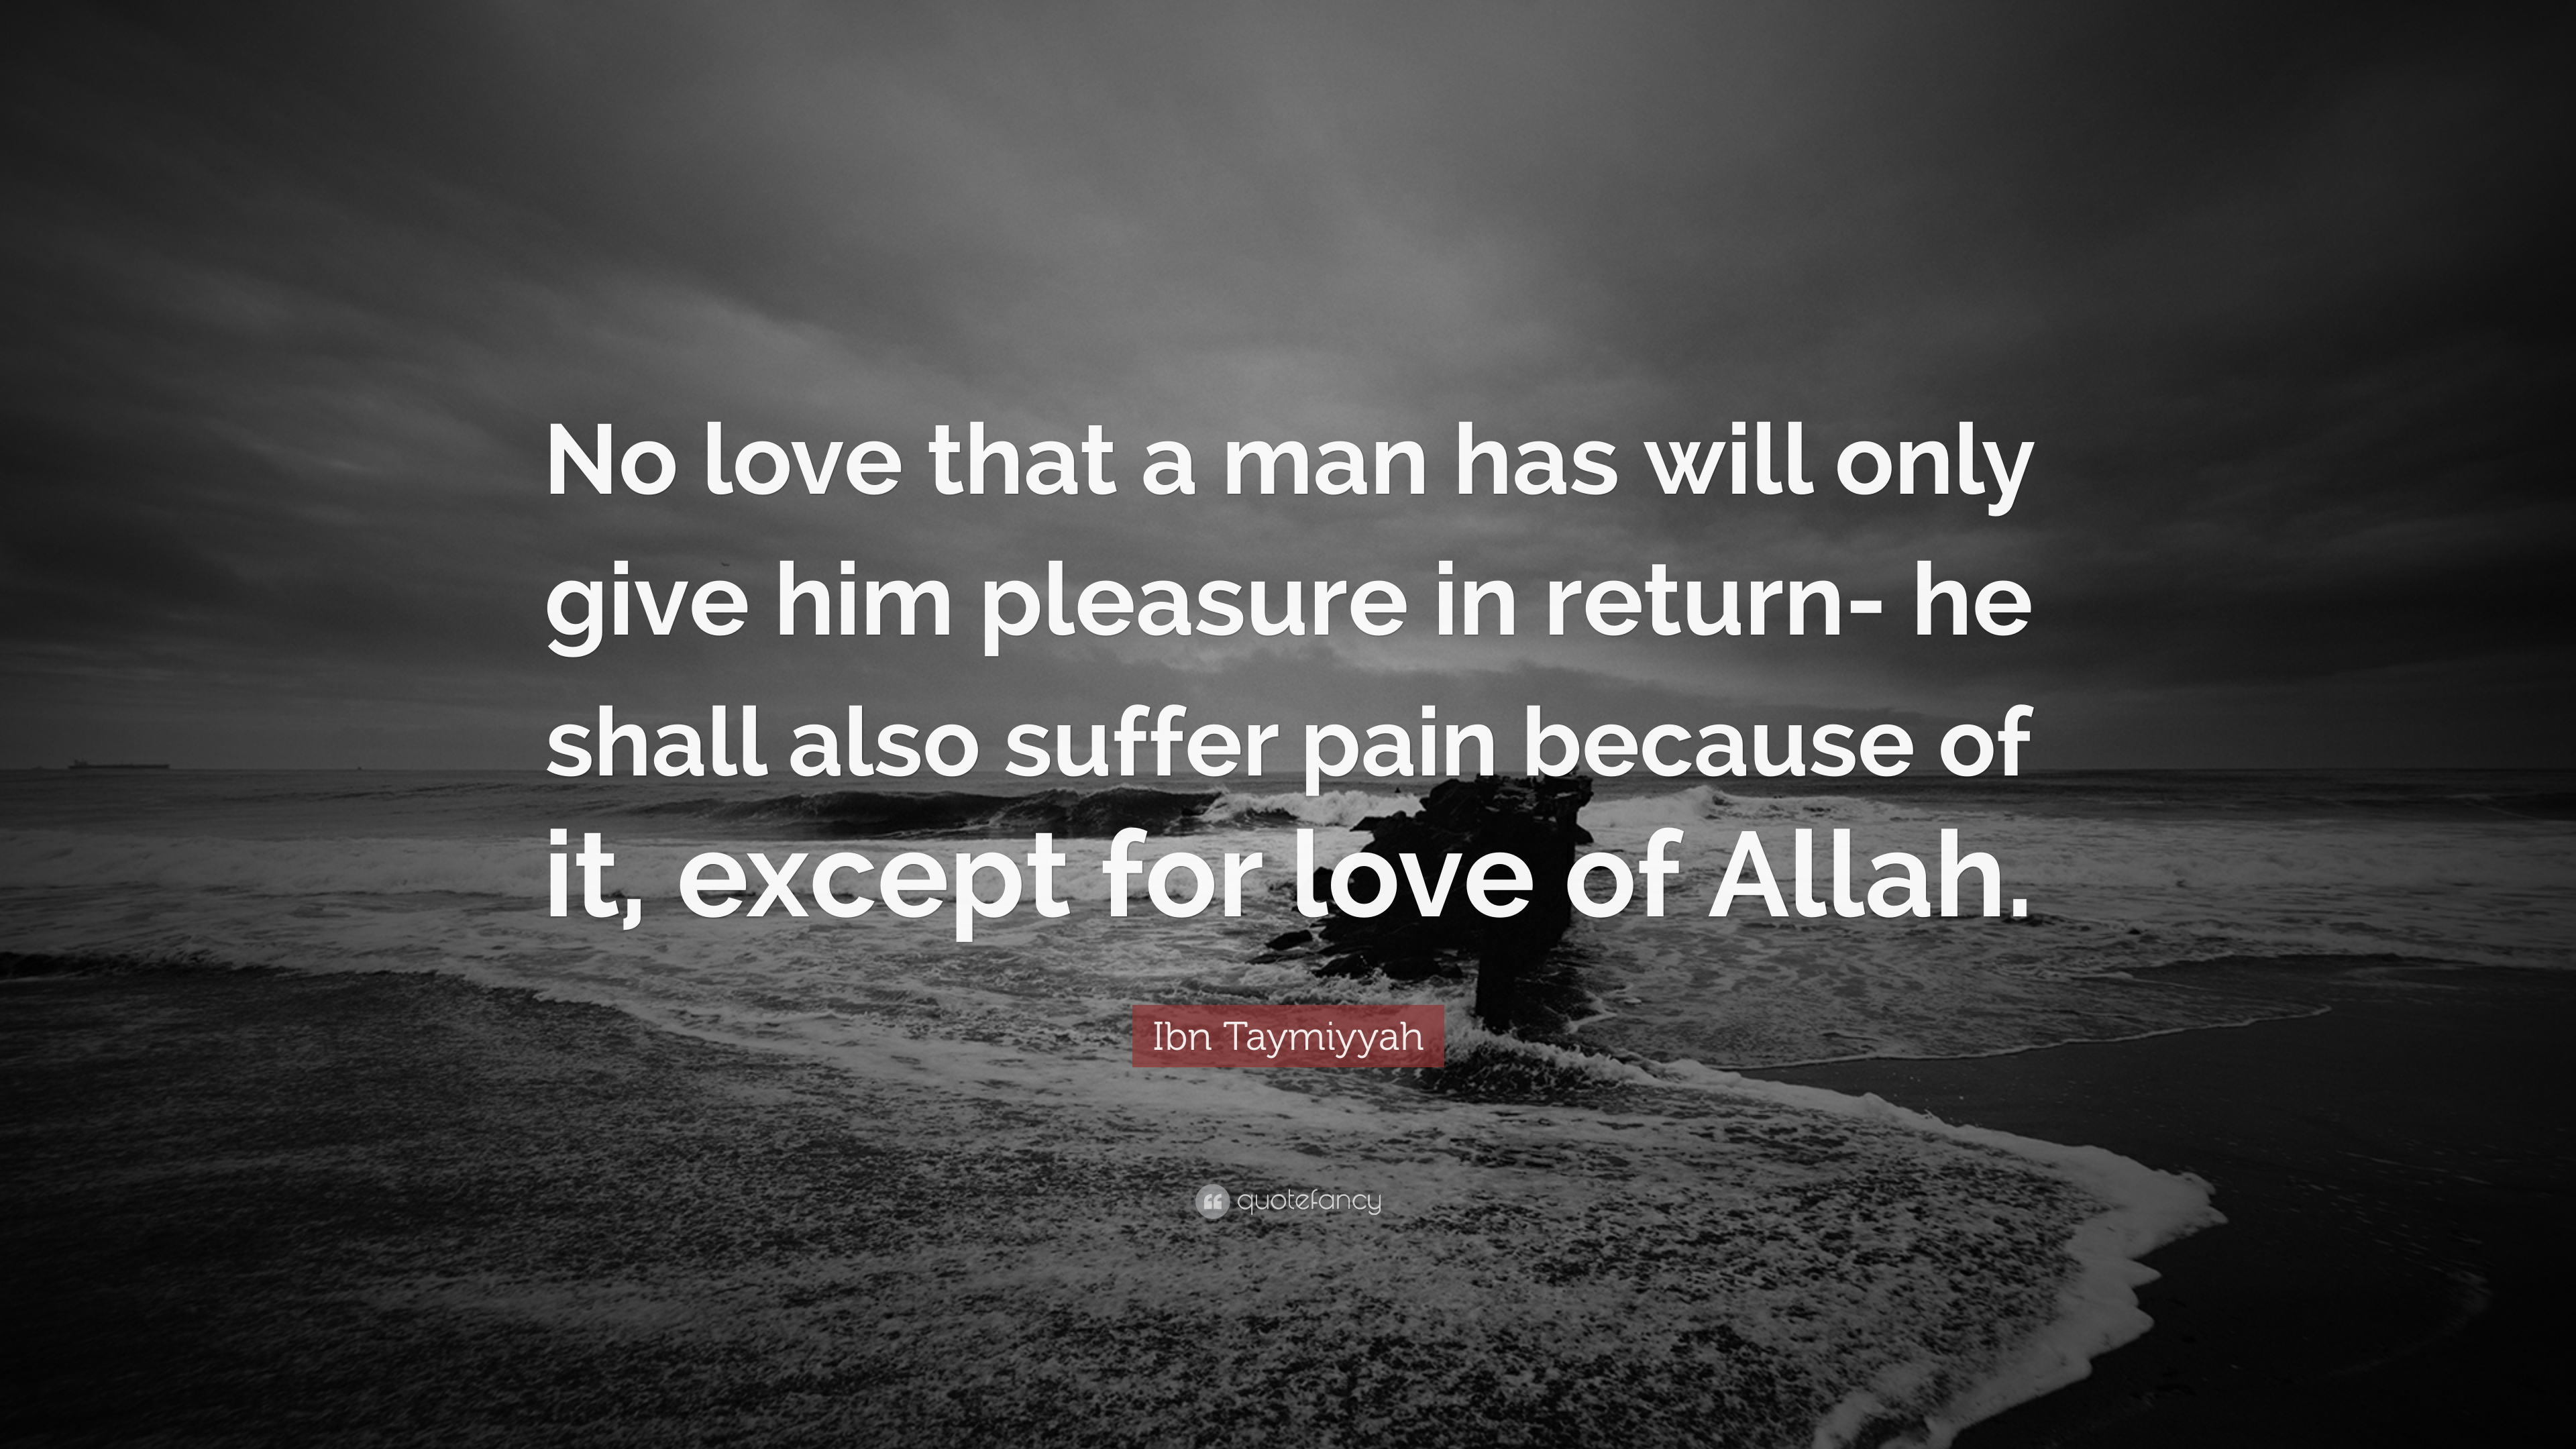 Ibn Taymiyyah Quote: No love that a man has will only